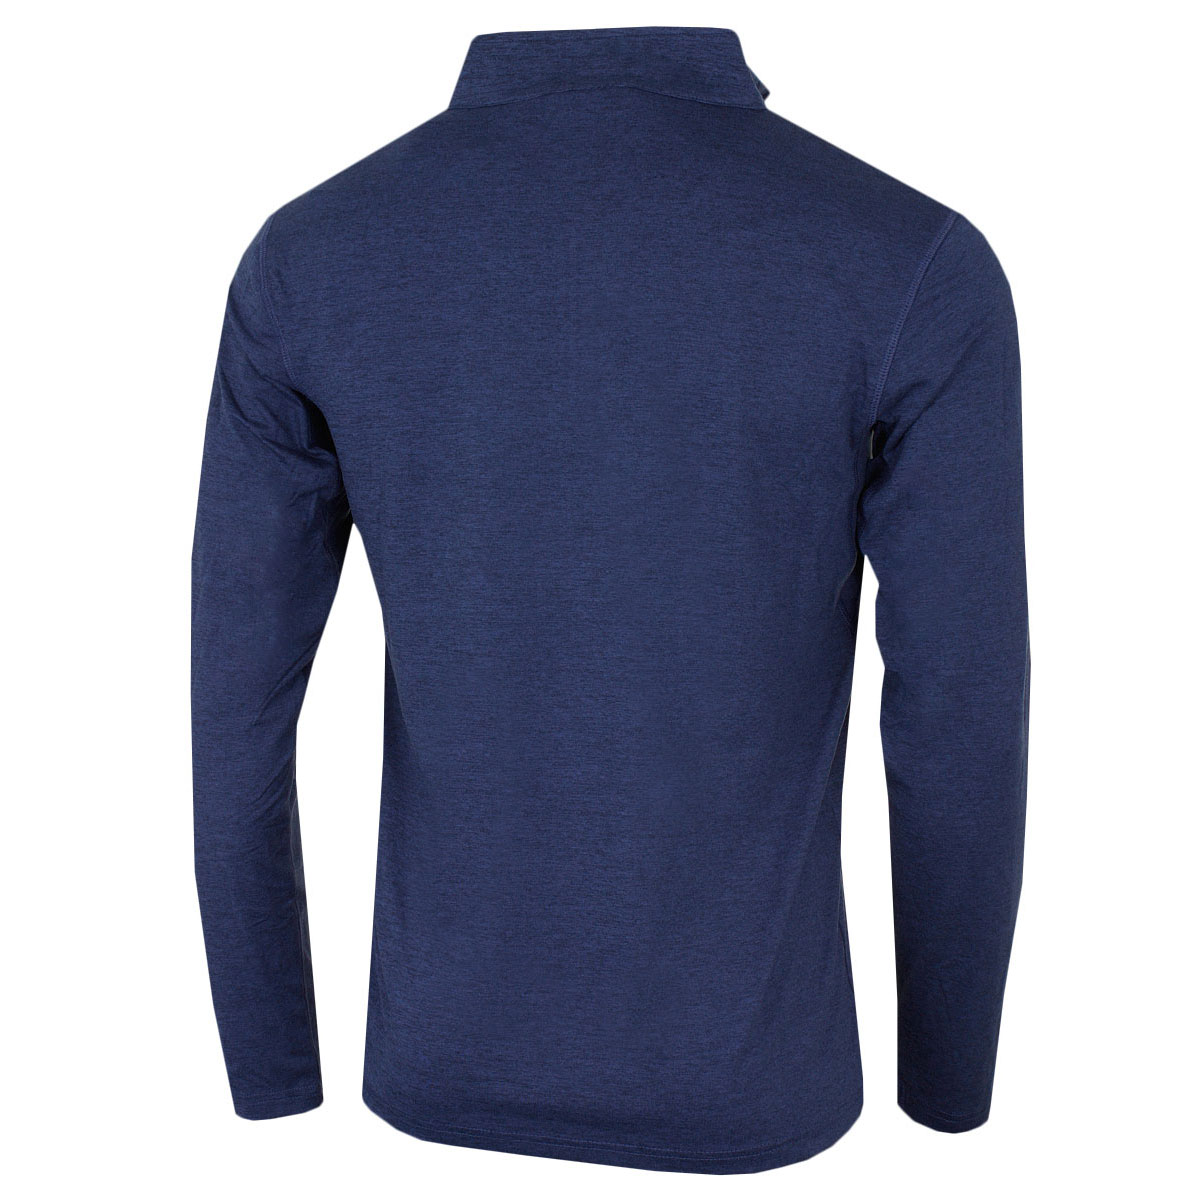 Calvin-Klein-Mens-Newport-HZ-LS-Breathable-Lightweight-Sweater-28-OFF-RRP thumbnail 6